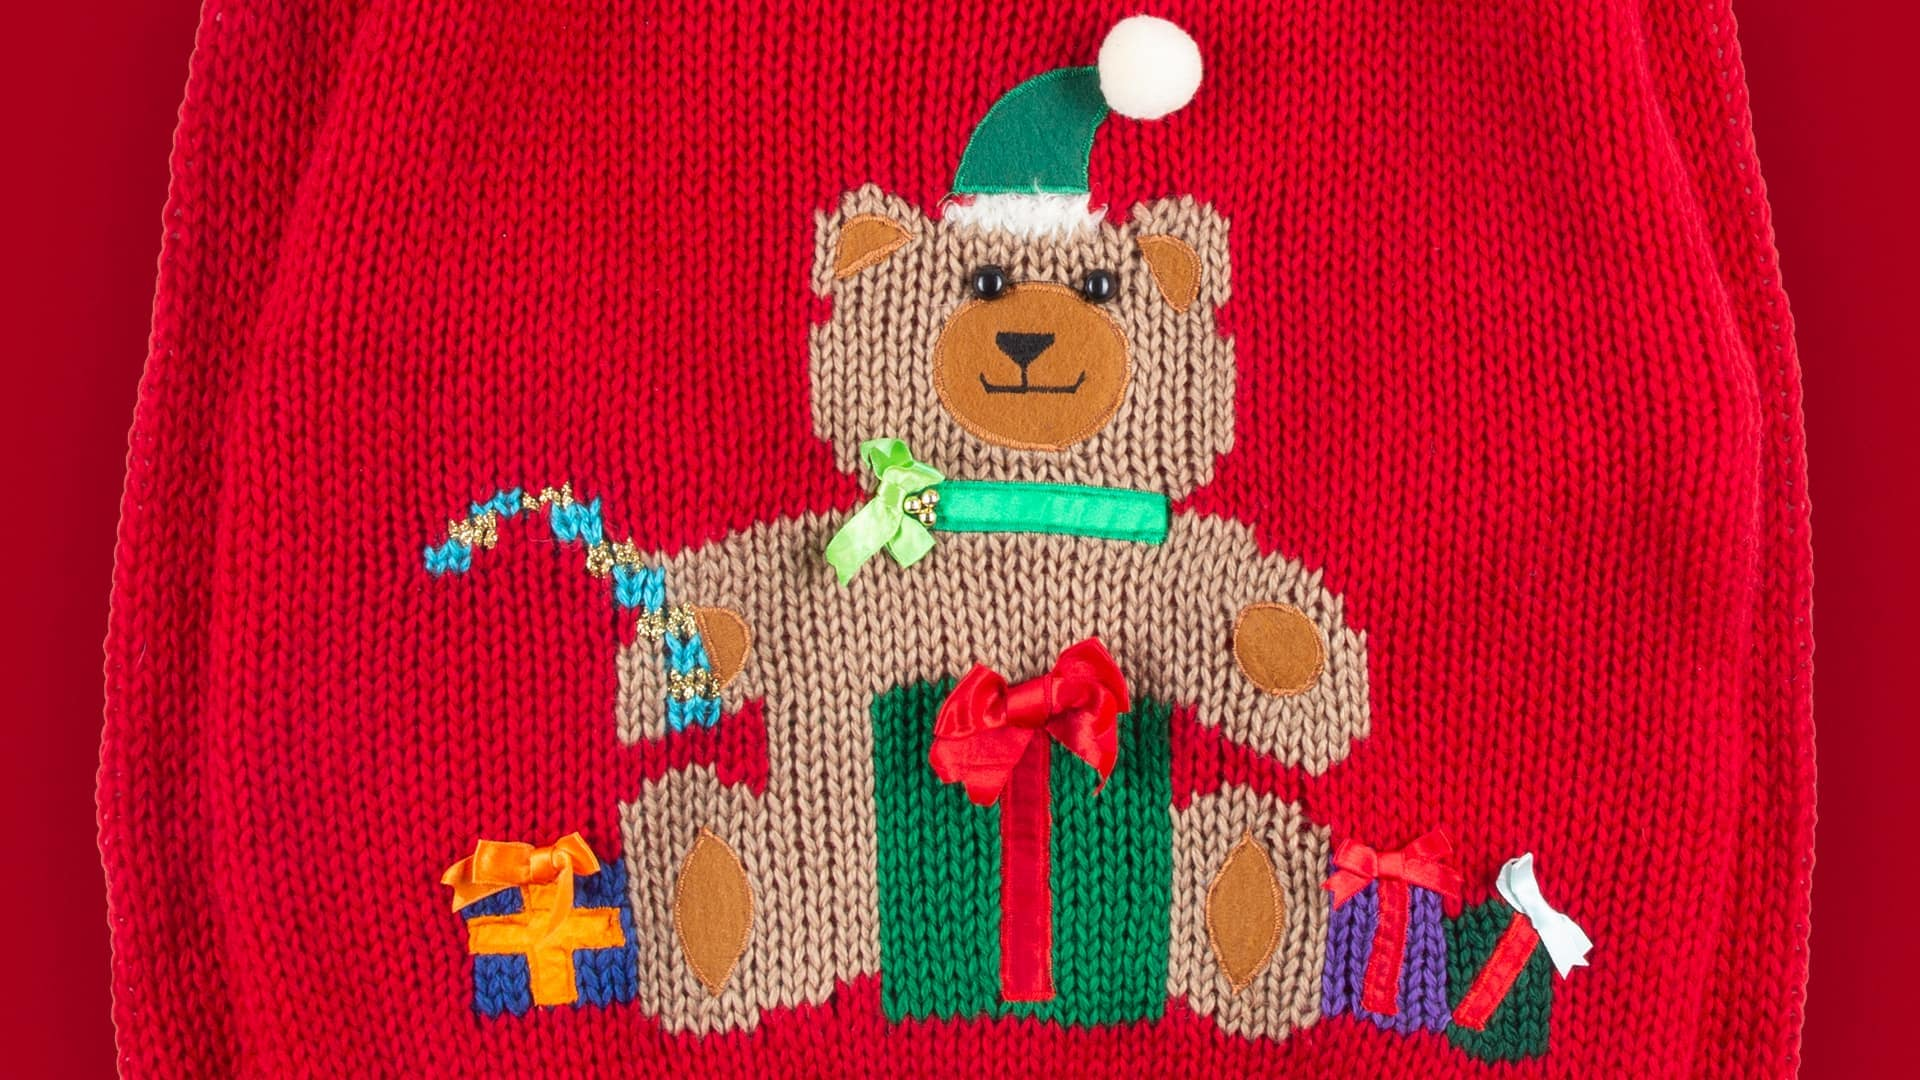 Ugly Christmas sweater featuring a teddy bear surrounded by presents.